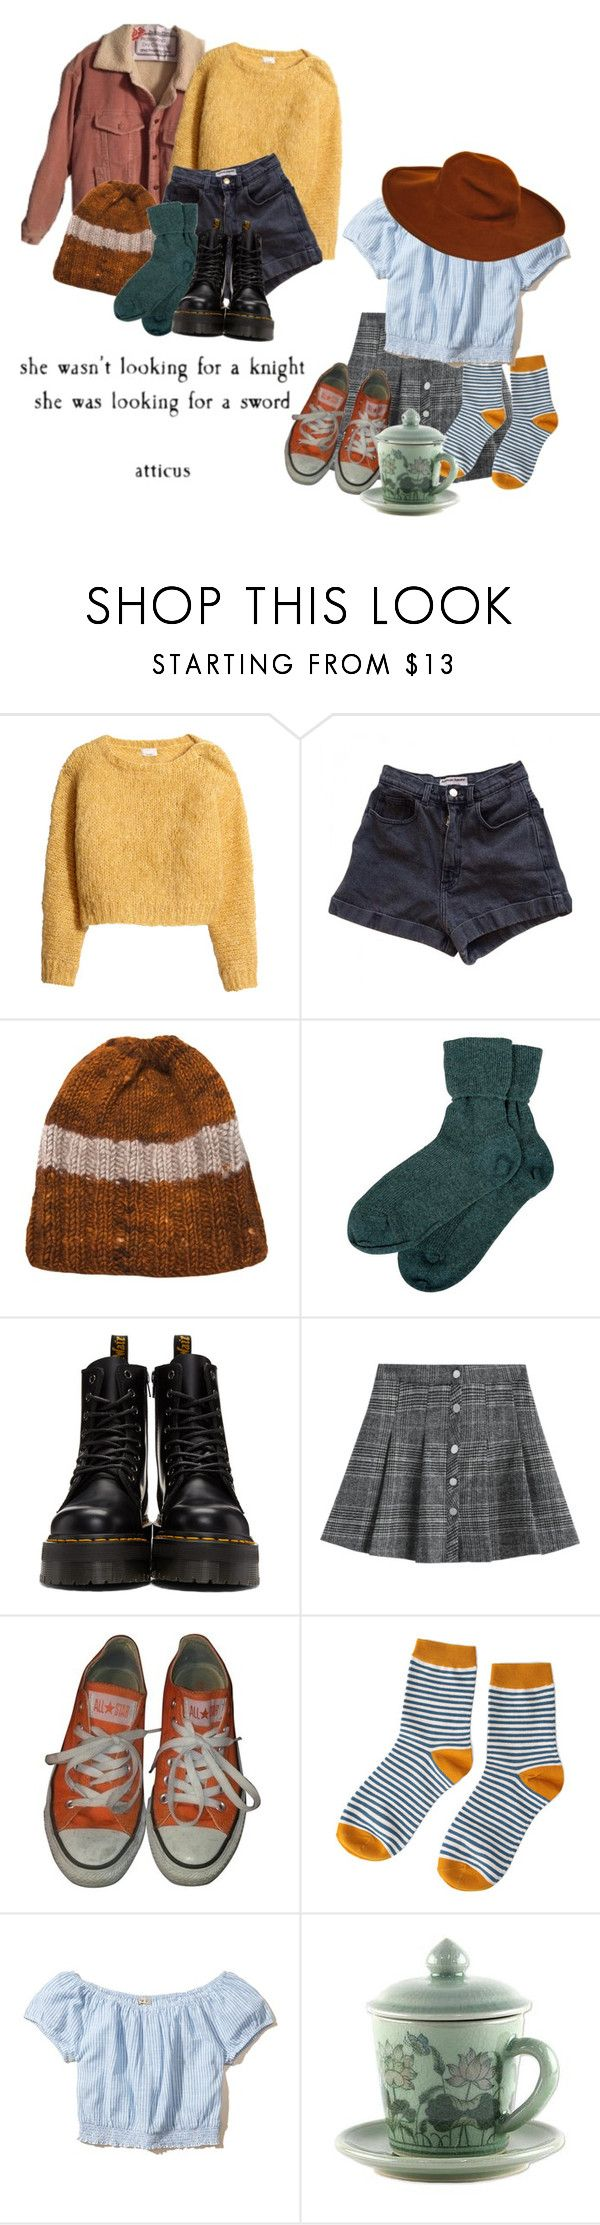 """""""been hanginaround this town"""" by shiasunflower ❤ liked on Polyvore featuring H&M, American Apparel, Raif, Brora, Dr. Martens, Converse, Hollister Co., NOVICA and Oscar de la Renta"""